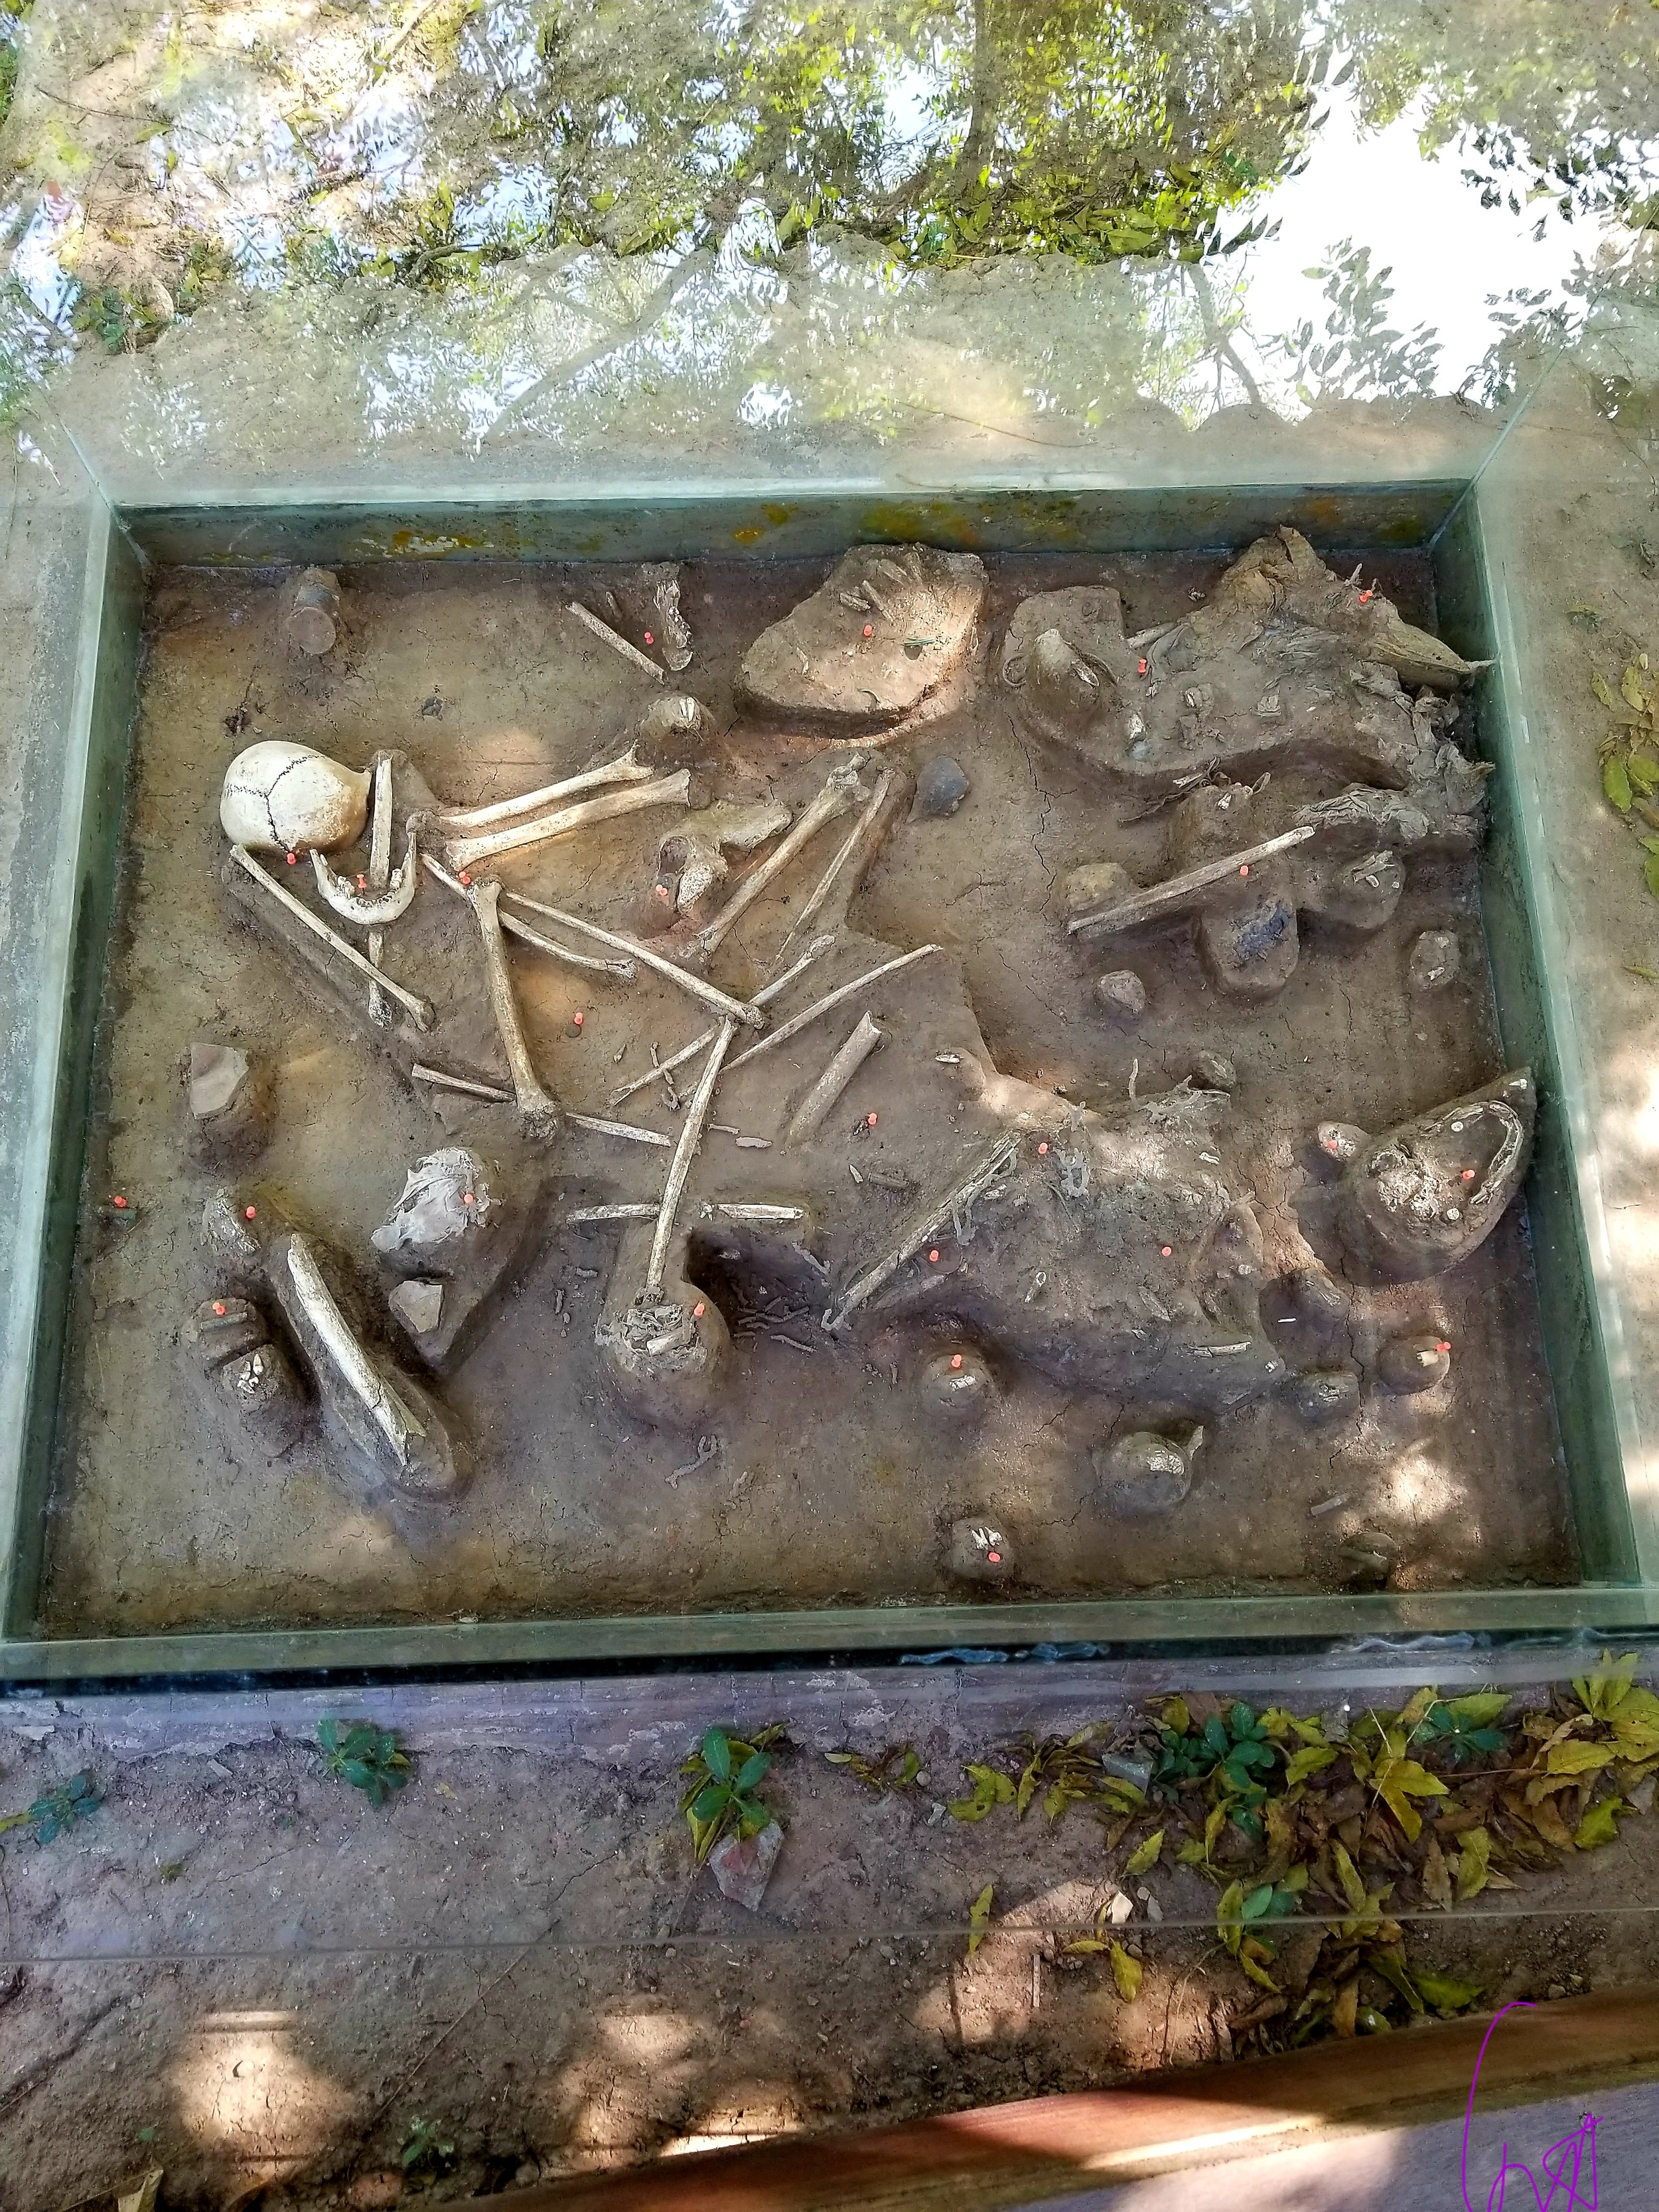 Remains at The Killing Fields